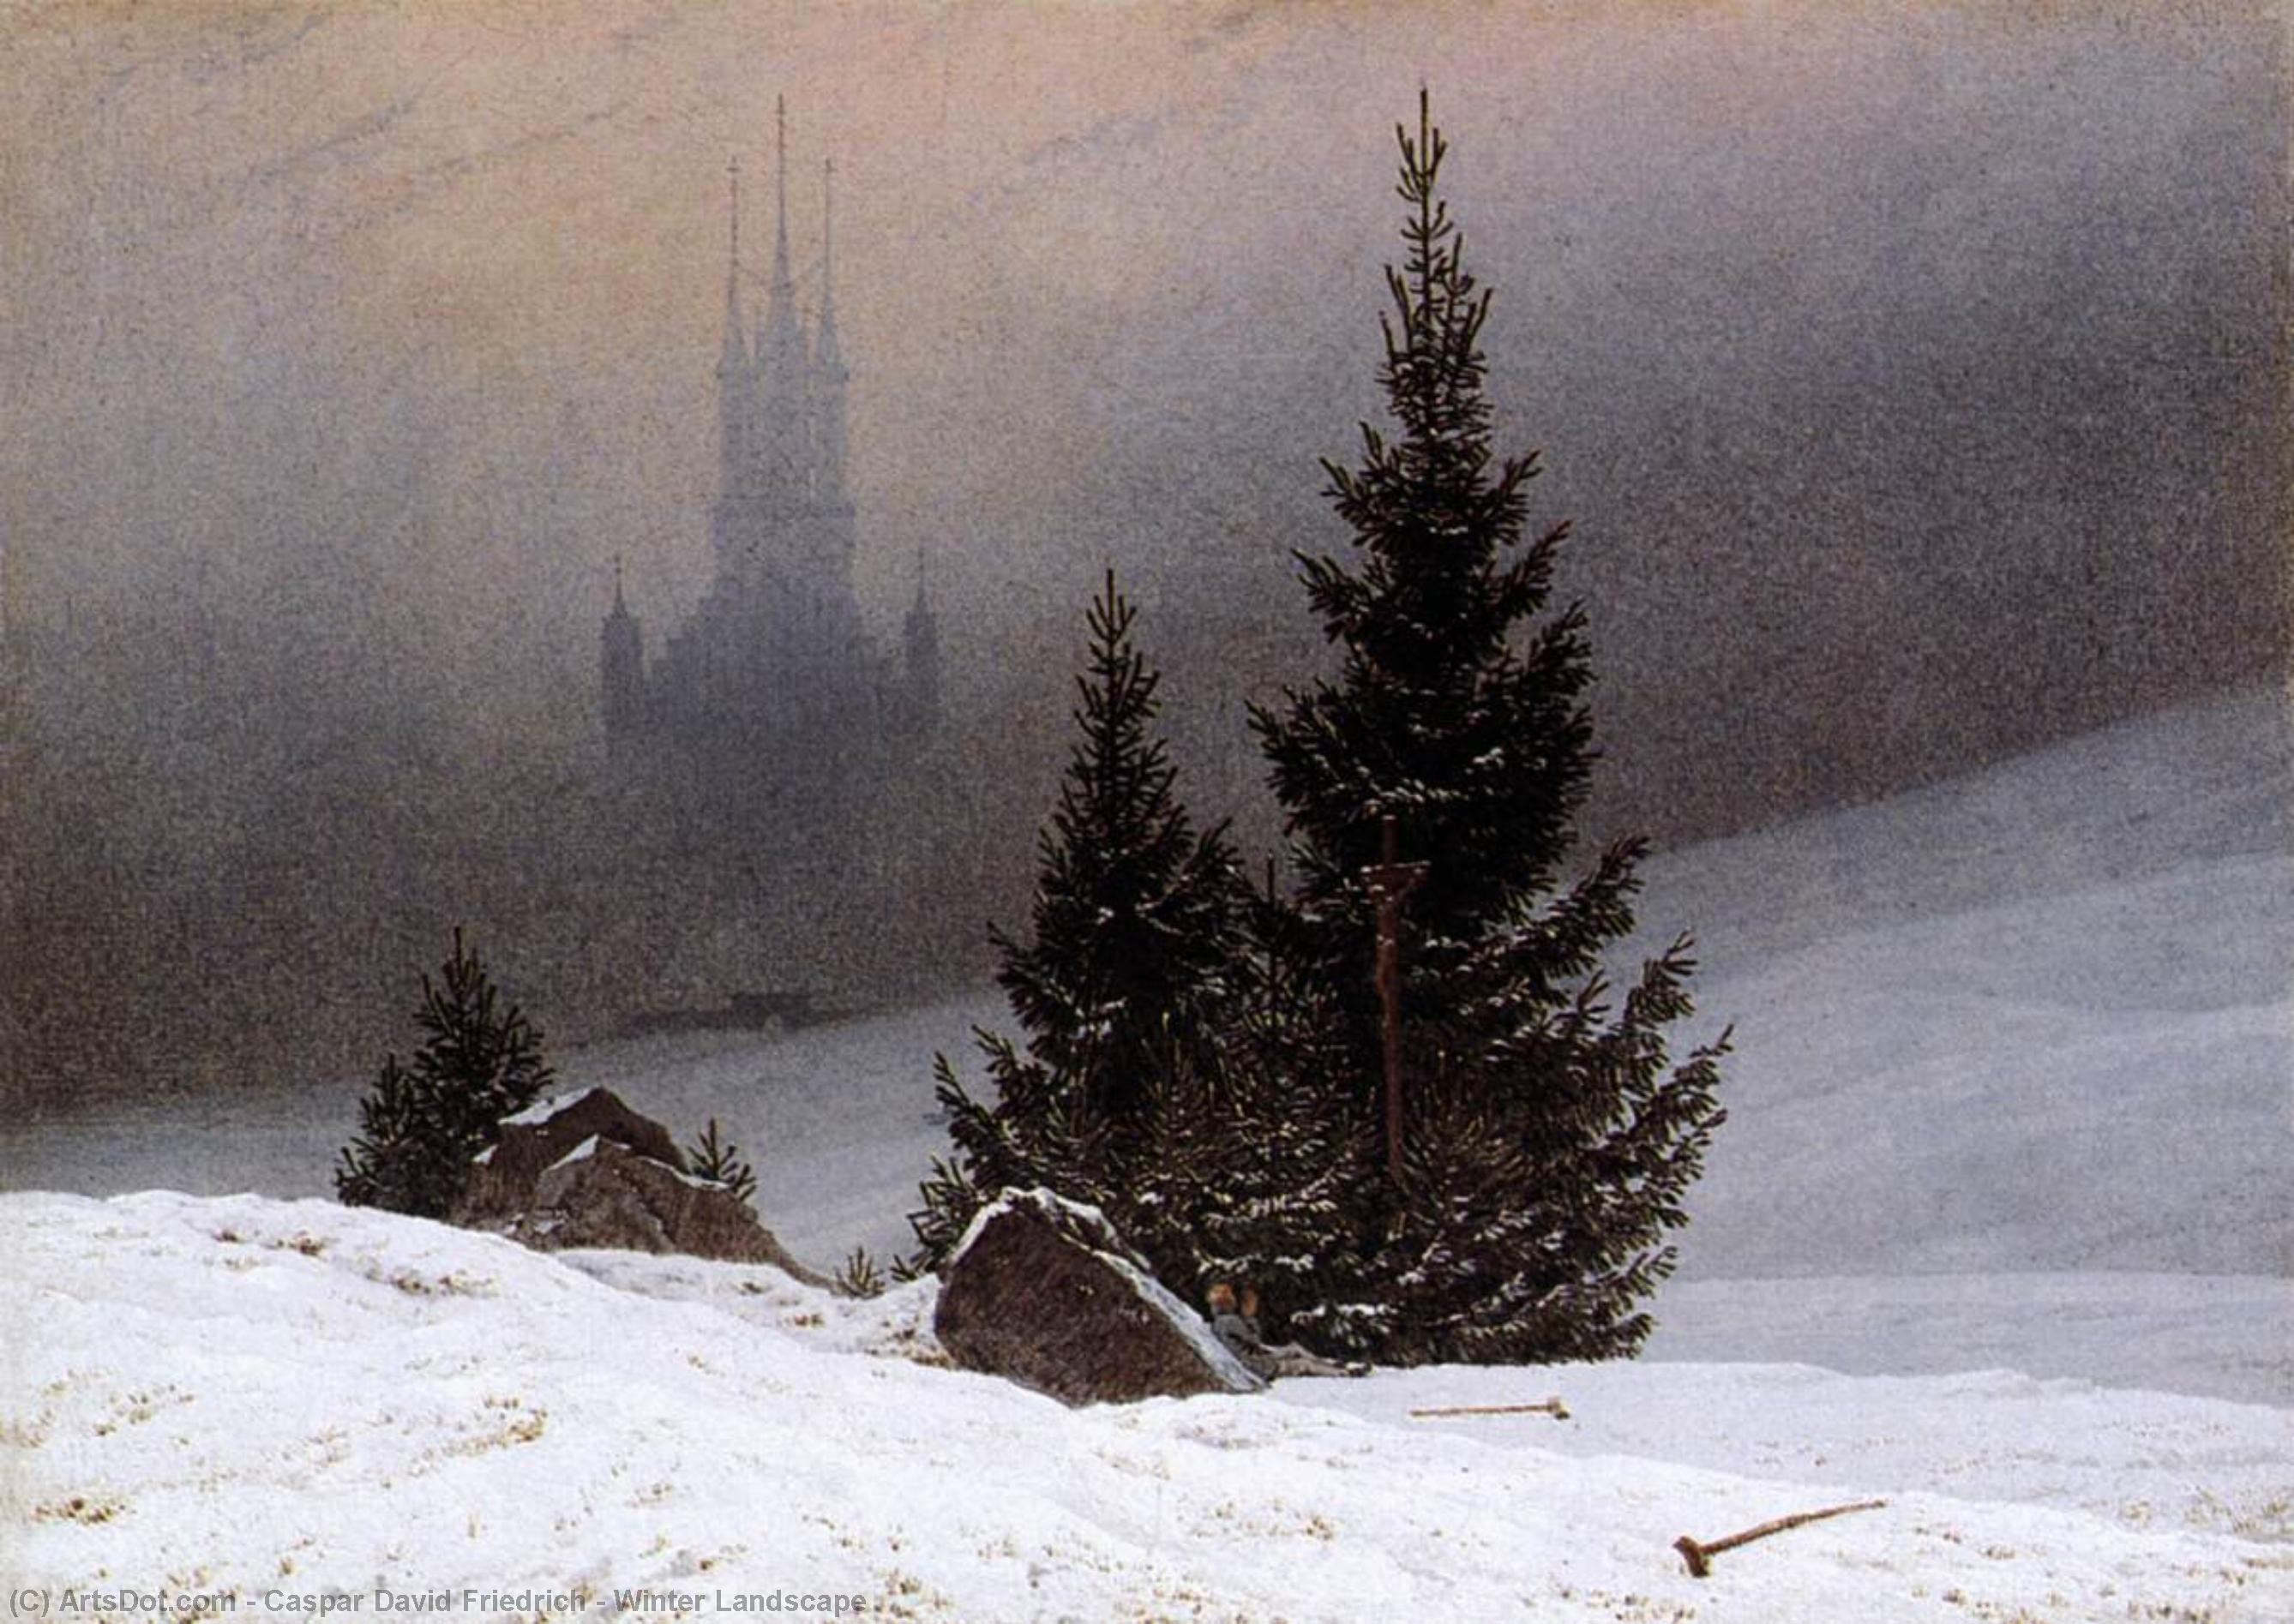 冬季 景观, 1811 通过 Caspar David Friedrich (1774-1840, Germany) | 畫再現 | ArtsDot.com